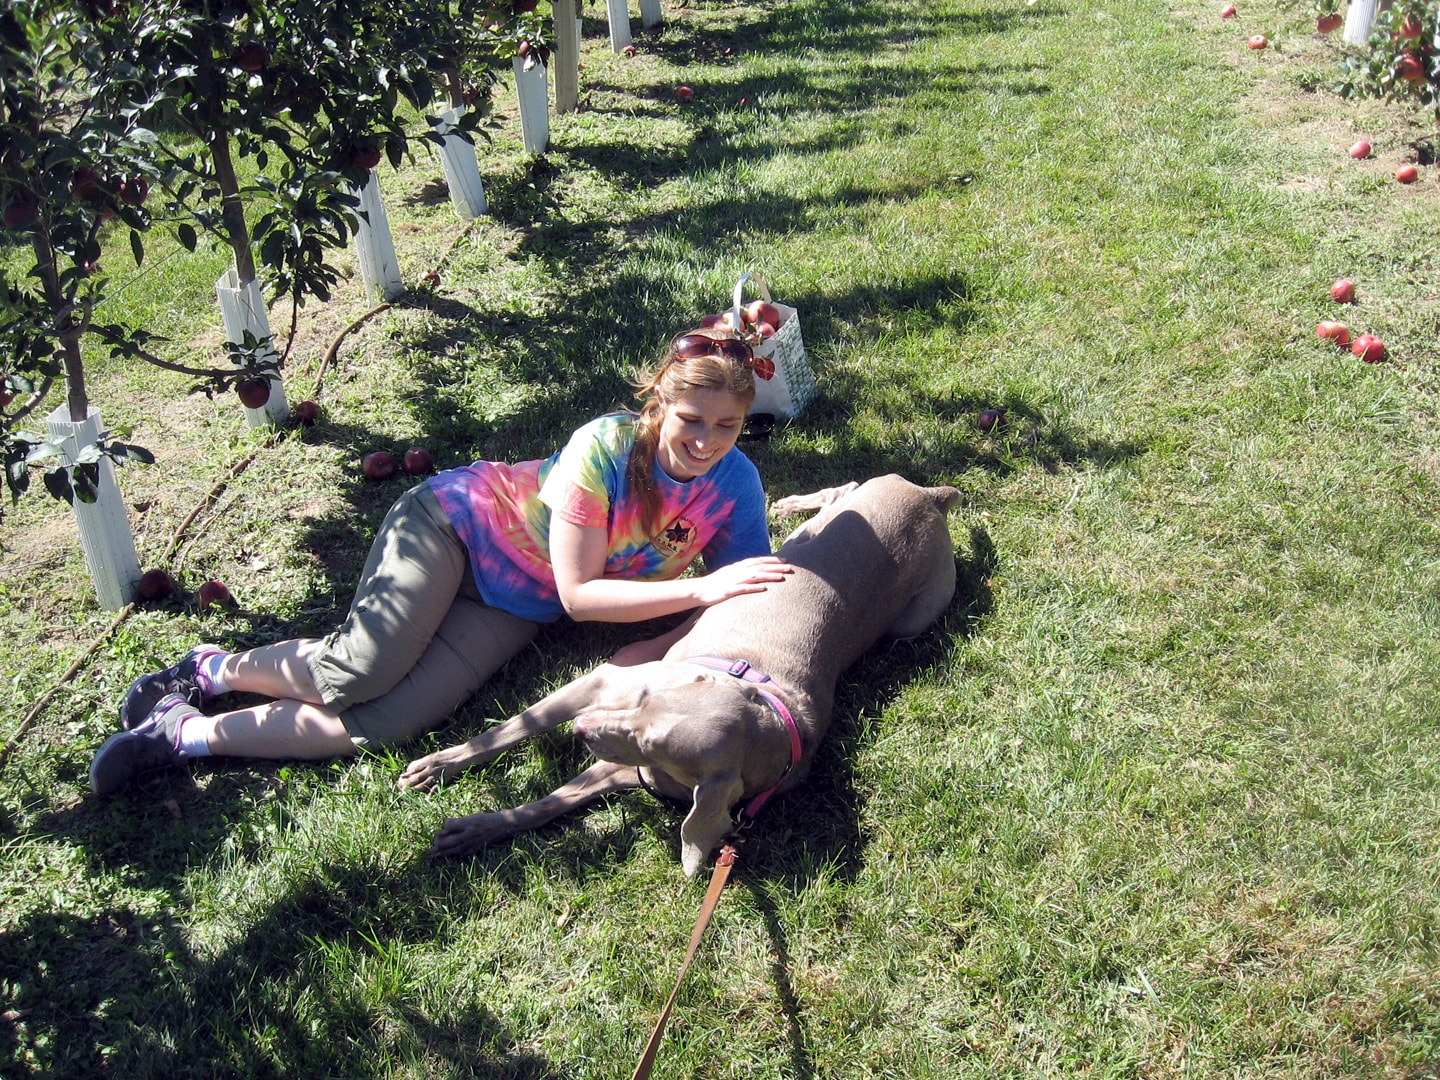 Angela and her dog relax in the apple orchard